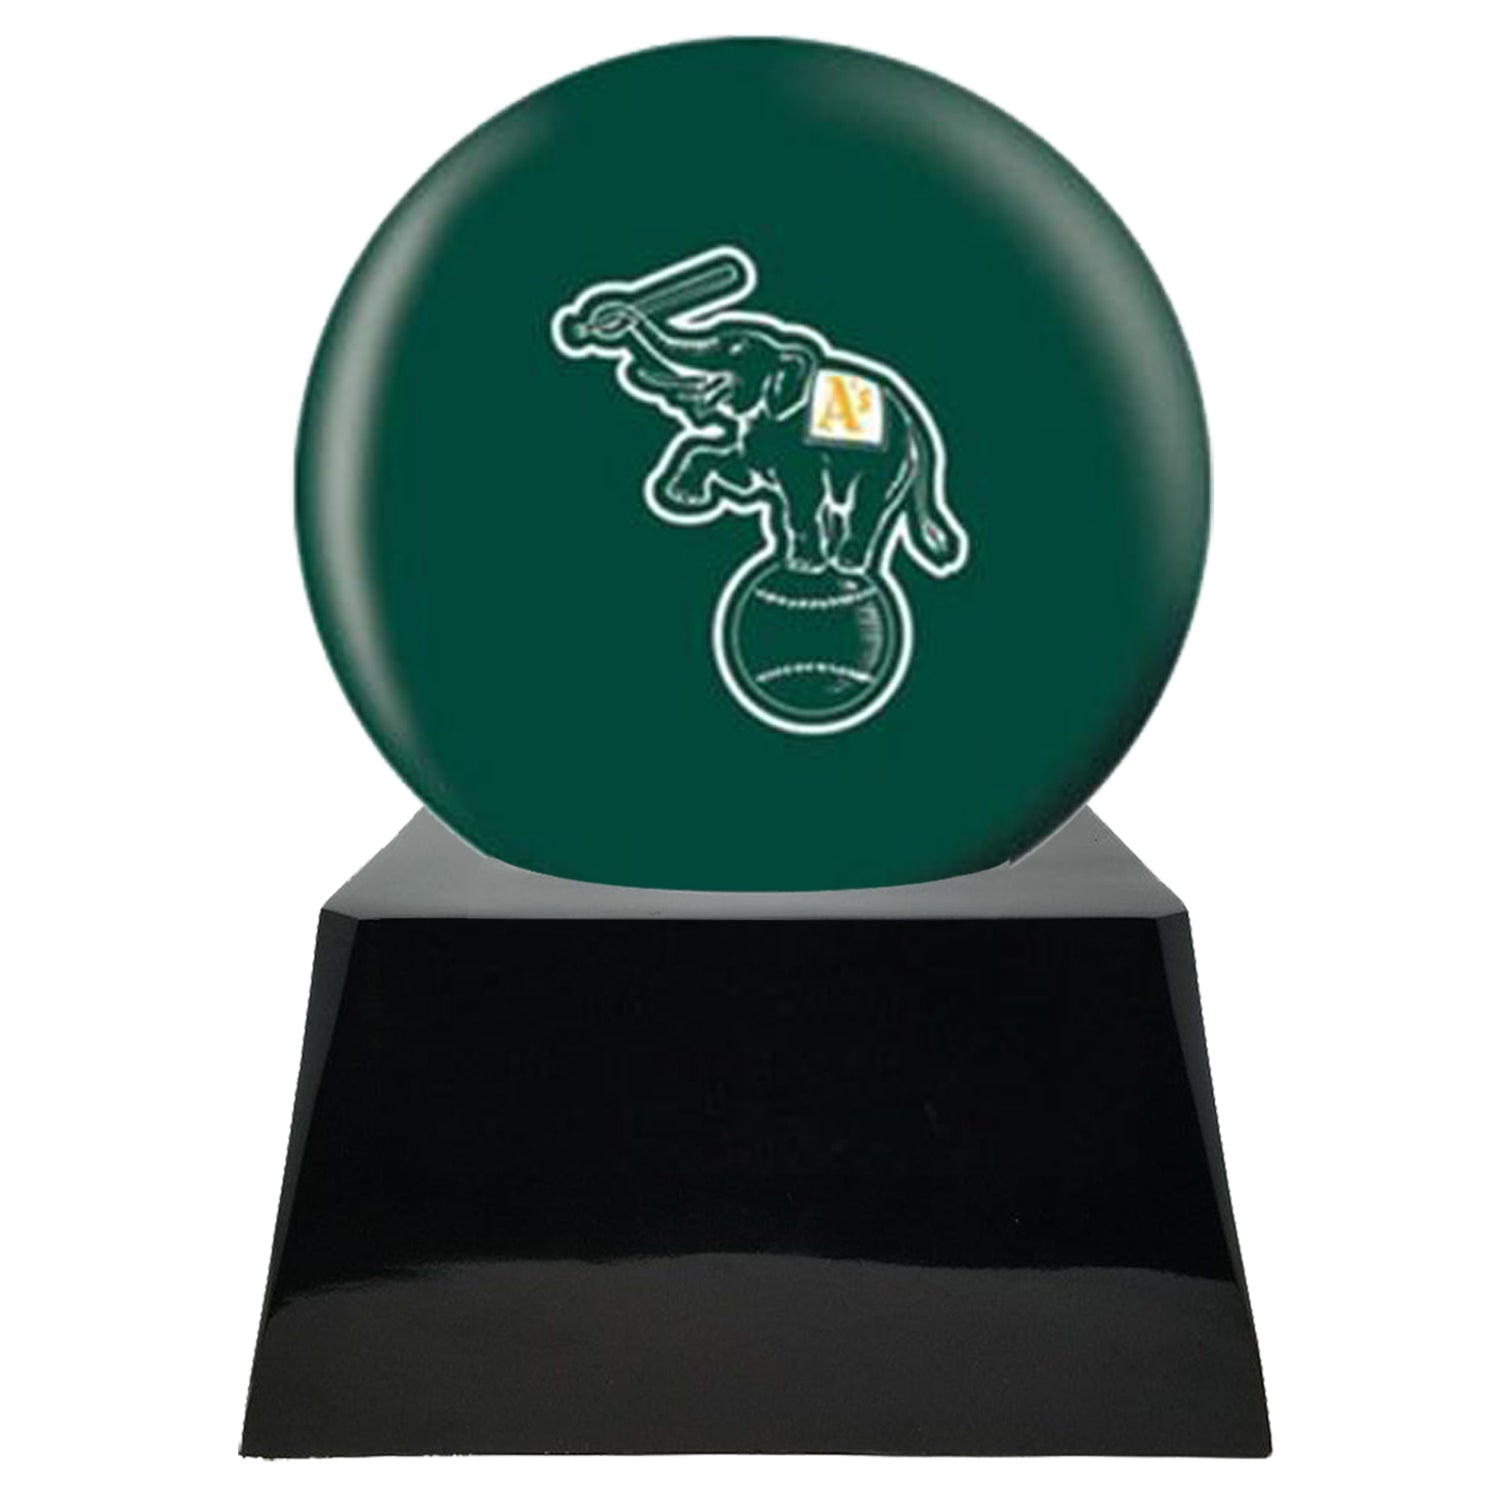 Baseball Cremation Urns For Human Ashes - Baseball Team Cremation Urn and Oakland Athletics Ball Decor with custom metal plaque - Memorials4u